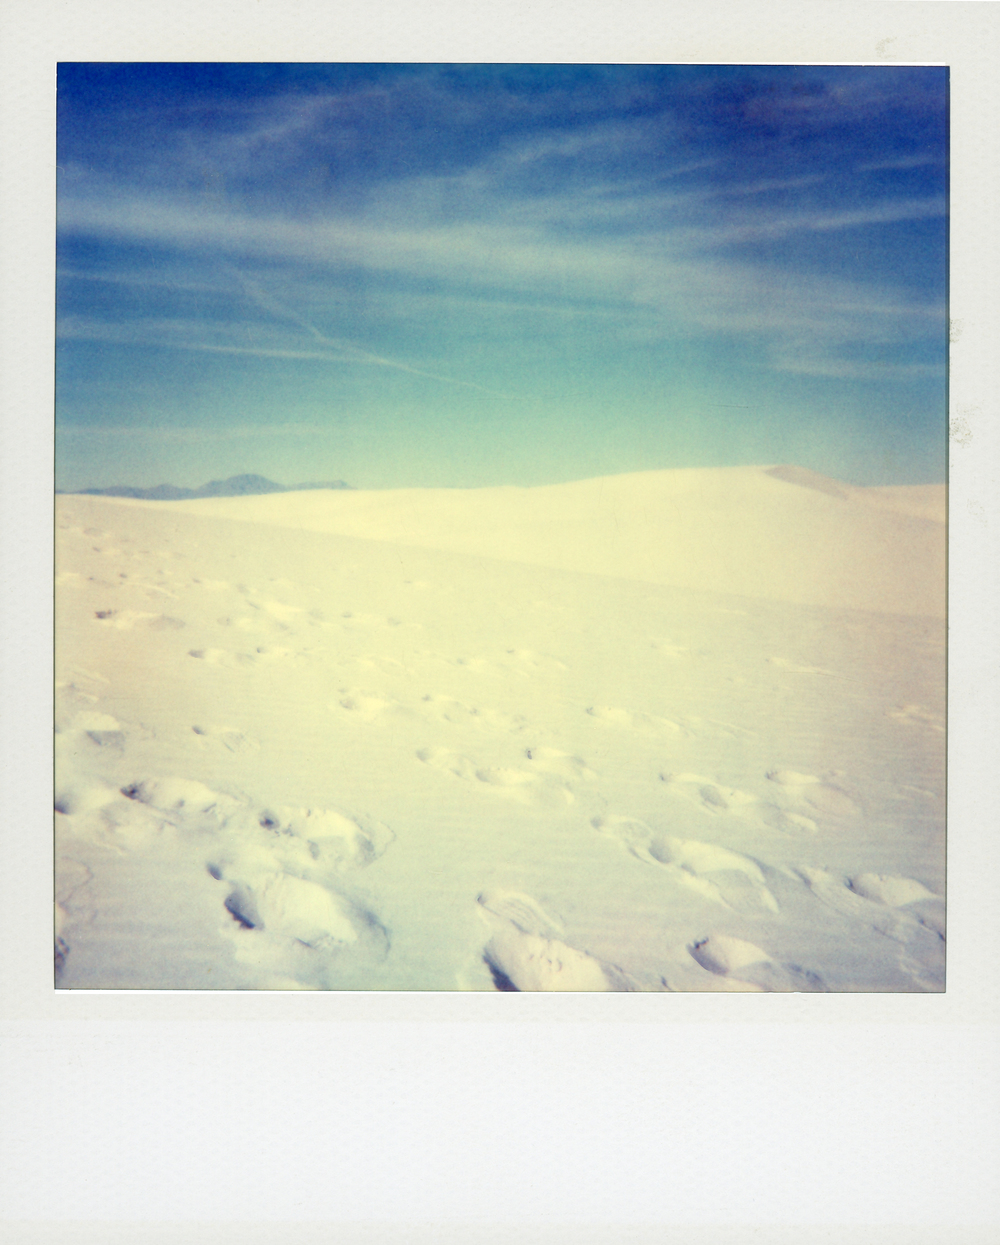 polaroid whitesands004.jpg